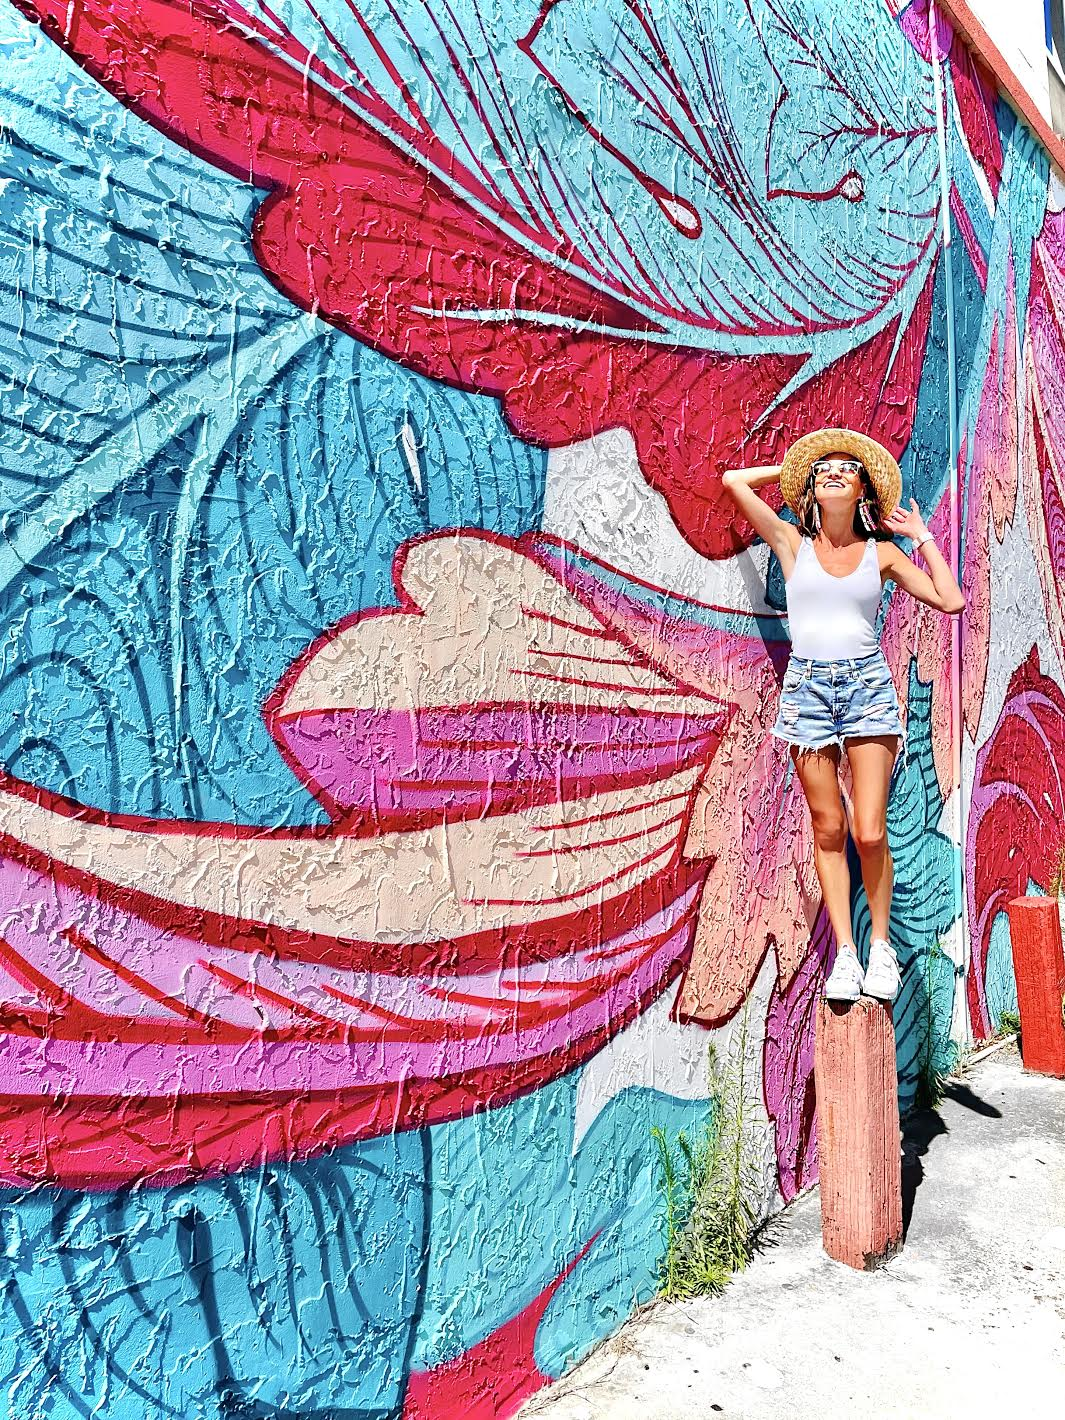 Check Out These 5 Murals in Jacksonville, Florida